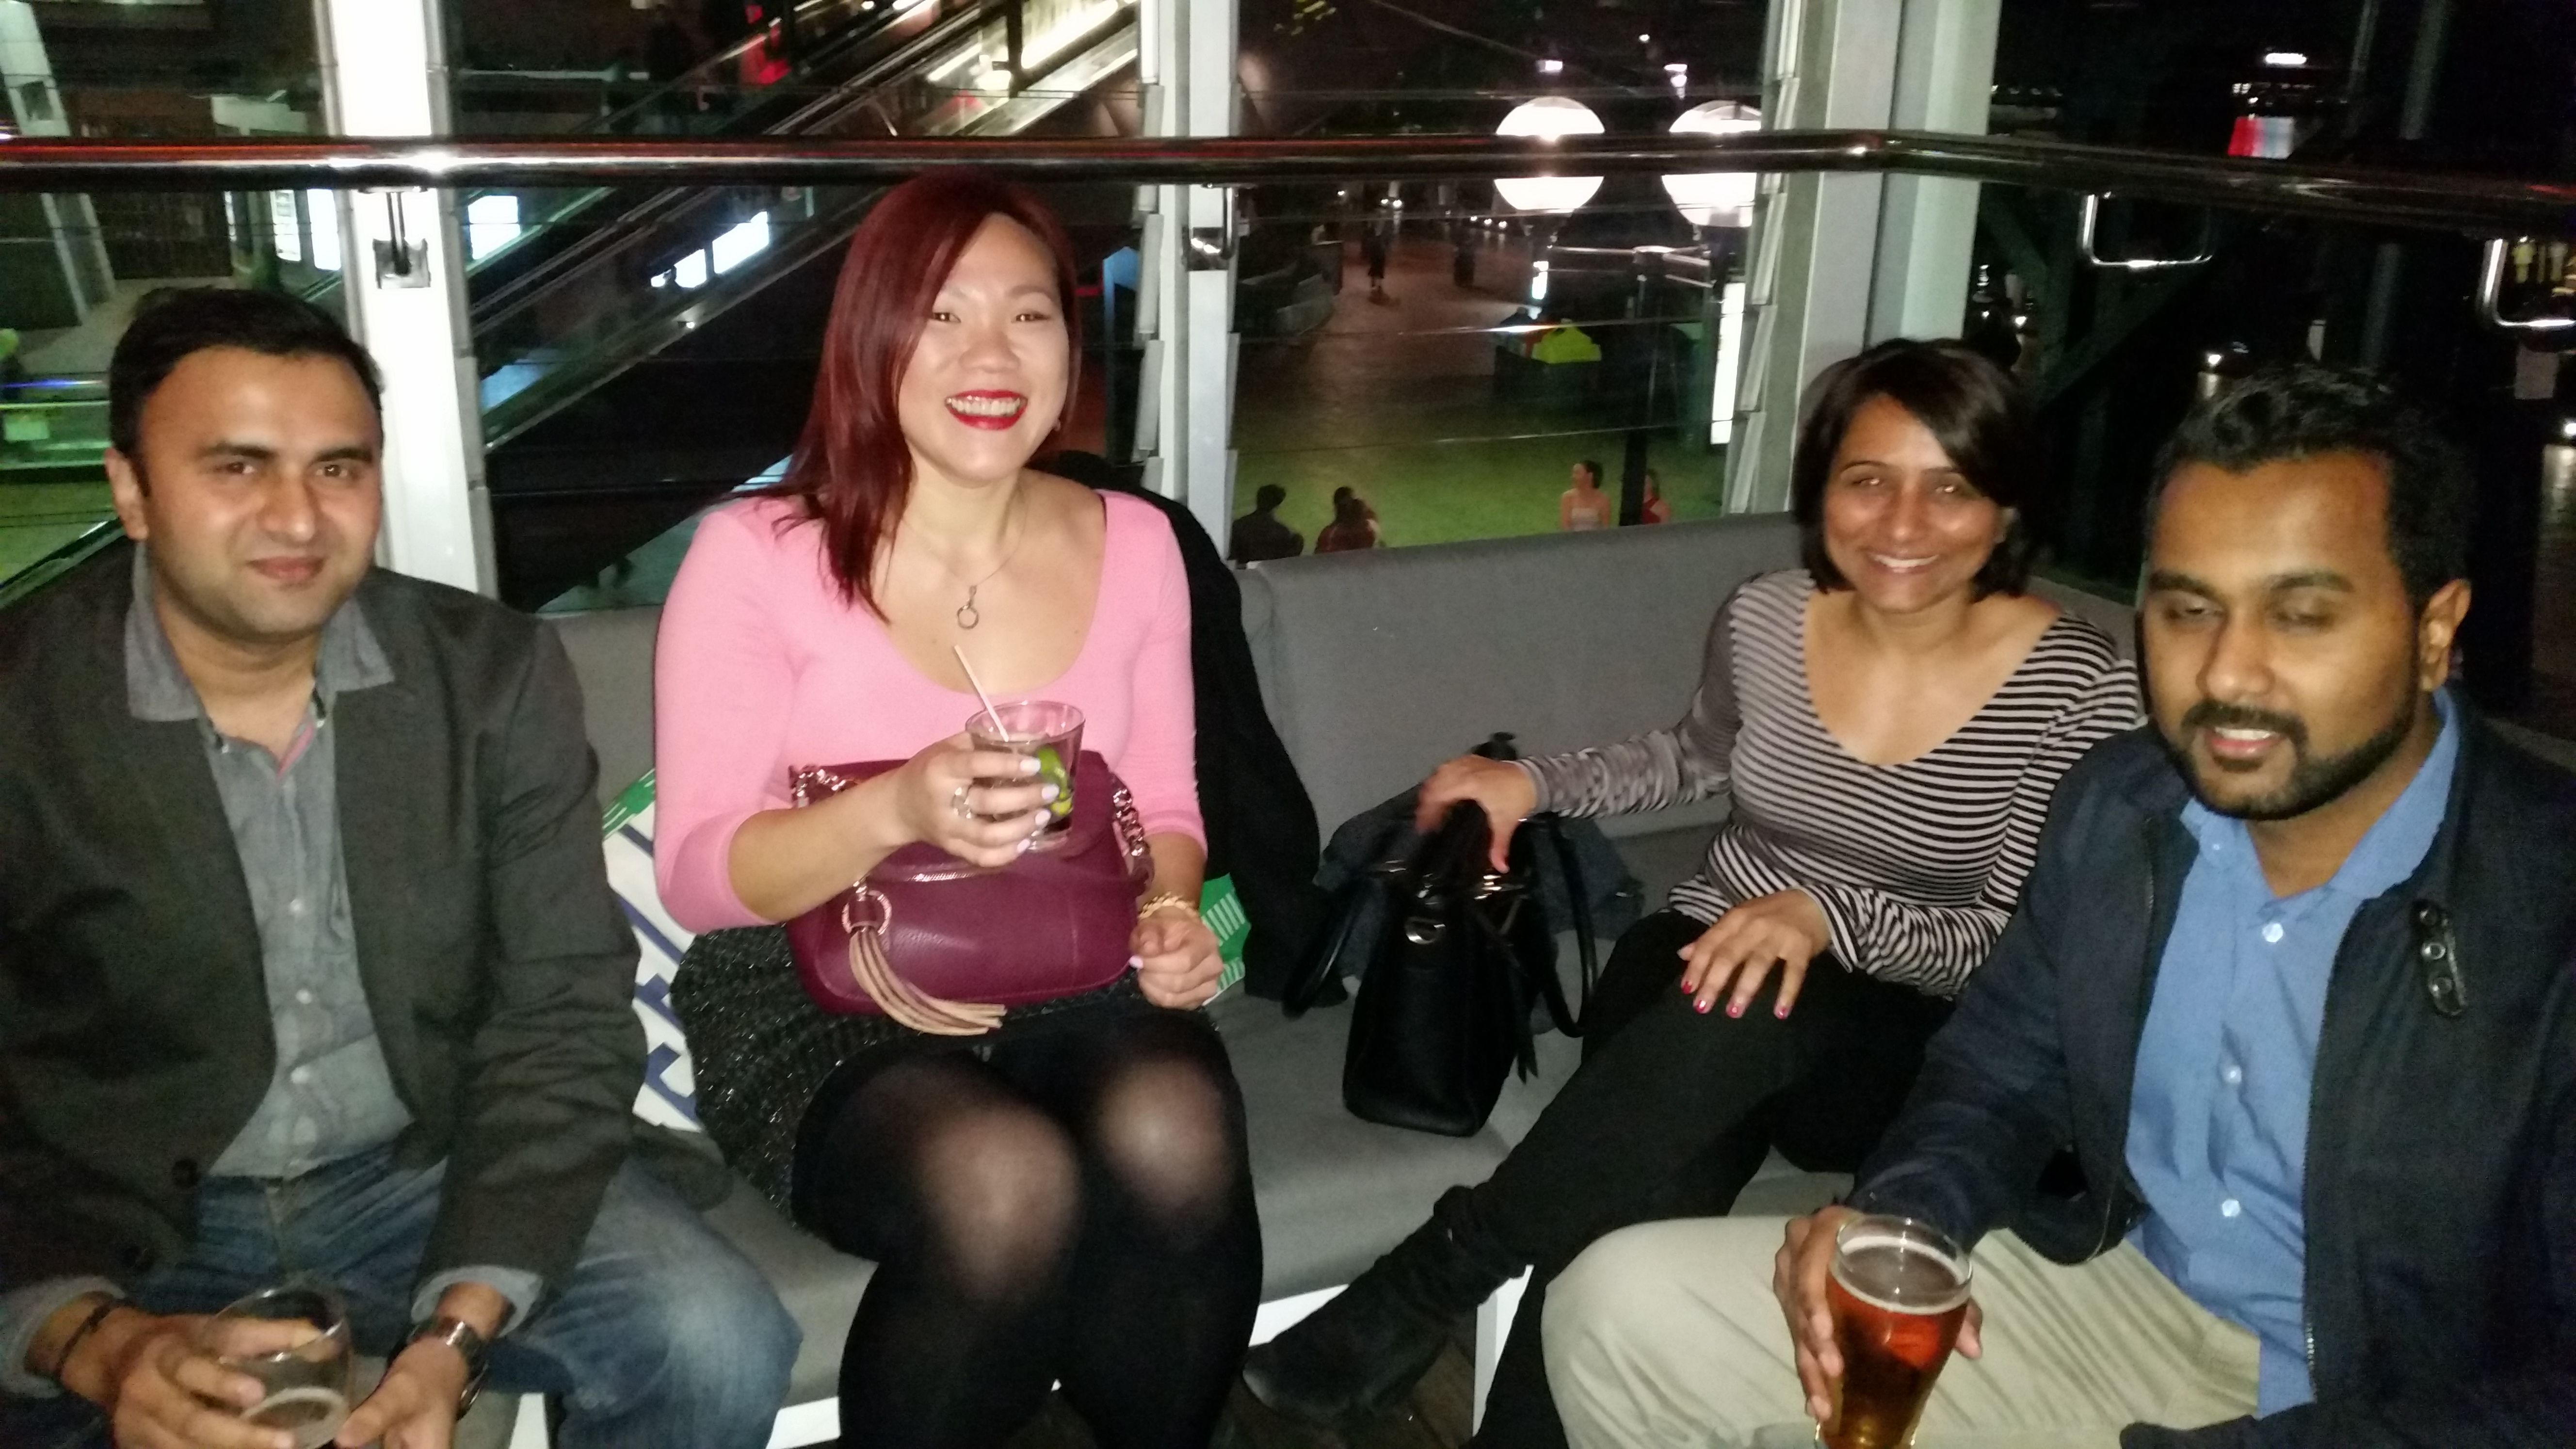 dating event sydney To find true love is hard, but we can help you, just register on this dating site online and start dating, chatting and meeting new people.